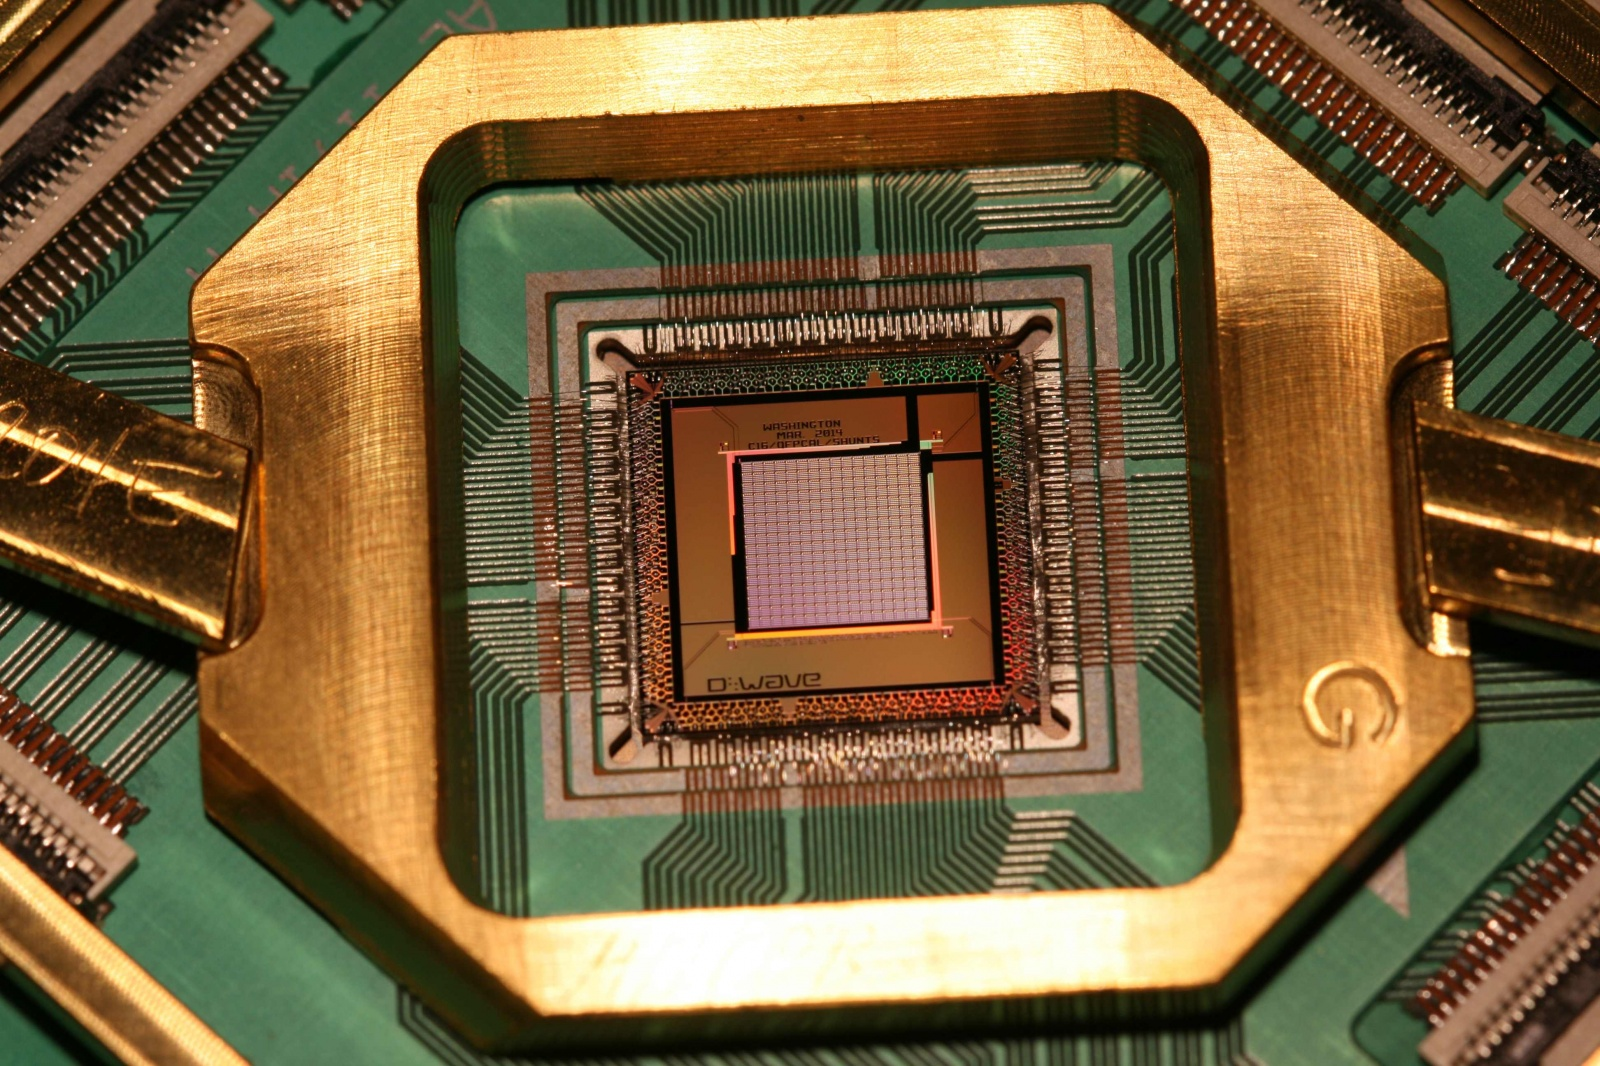 googles-mind-bending-quantum-computer-actually-works-image-cultofandroidcomwp-contentuploads201512D-Wave-1000Q-lower-res1-jpg